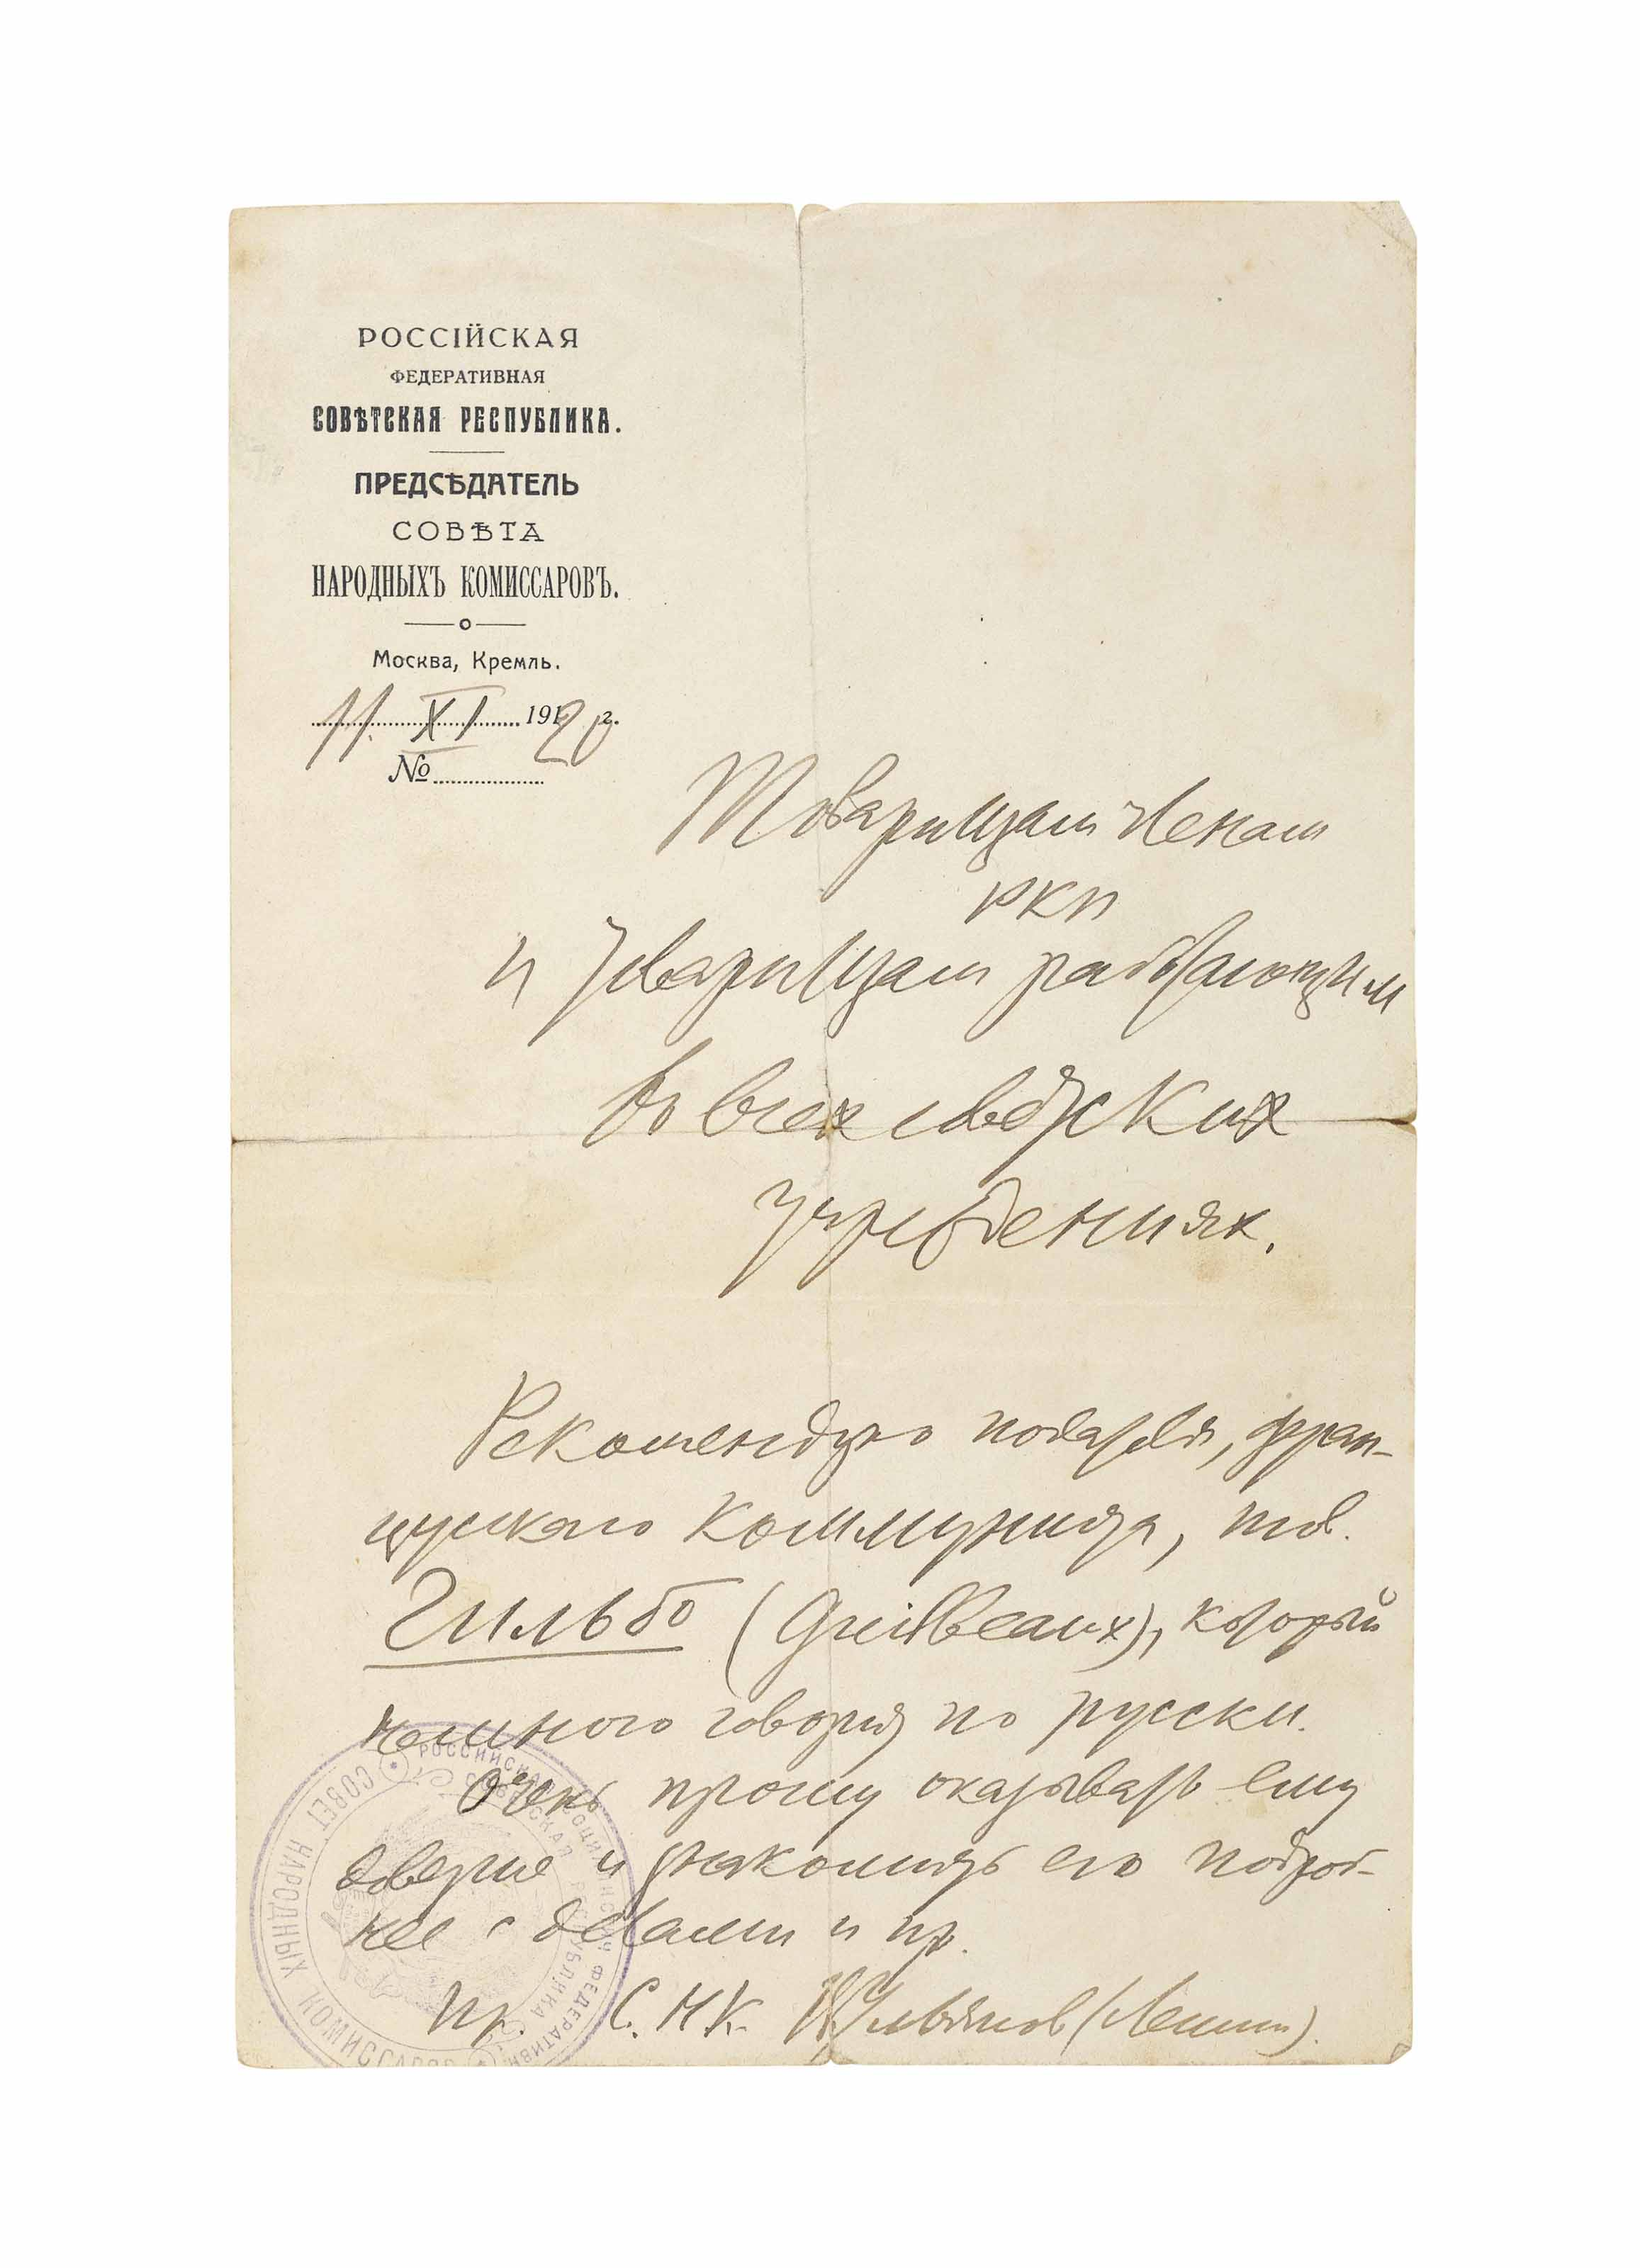 LENIN, Vladimir Ilyich (1870-1924). Autograph letter signed as President of the Council of People's Commissars (using both his birth name and his assumed name, 'V. Ulyanov (Lenin)') to 'Comrade members of the Russian Communist Party and comrades working in all Soviet organisms and institutions', Kremlin, Moscow, 11 November 1920, in Russian, 'I recommend to you the French communist, comrade Henri Guilbeaux, who speaks a little Russian.  I ask you to treat him with full confidence and to inform him of the details of matters underway and others', one page, 8vo (217 x 138mm), on paper with printed heading of the President of the Council of People's Commissars, contemporary stamp (short tears at folds, minor paste stains), laid onto paper; with a letter to Guilbeaux sending a carbon typescript of the 'Règlement de l'Académie Socialiste des Sciences Sociales' (present), 15 September 1918; and a related newspaper.